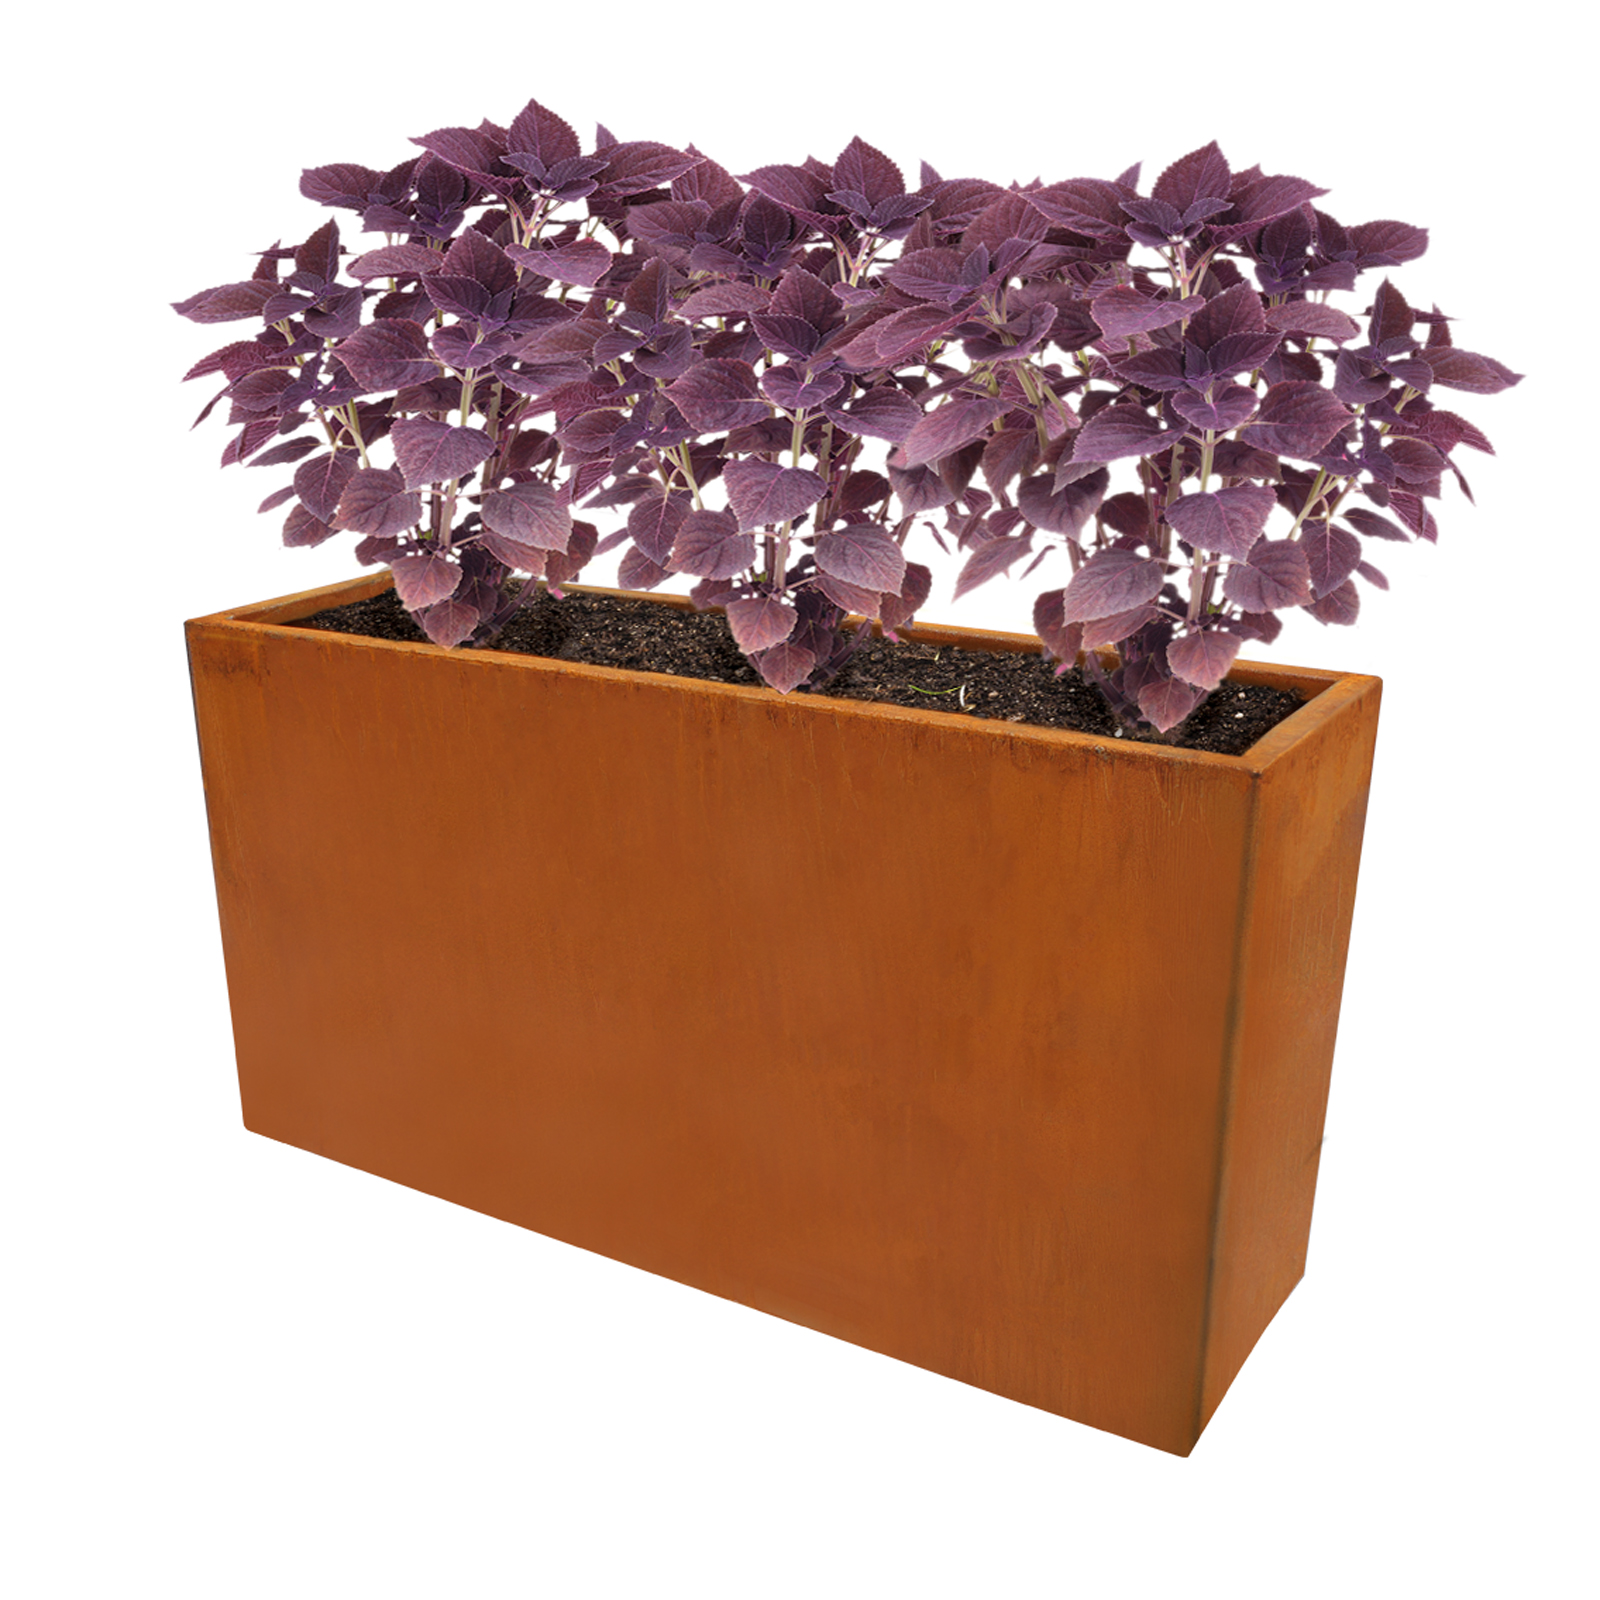 18489 cafe planter with plants 750x230x400